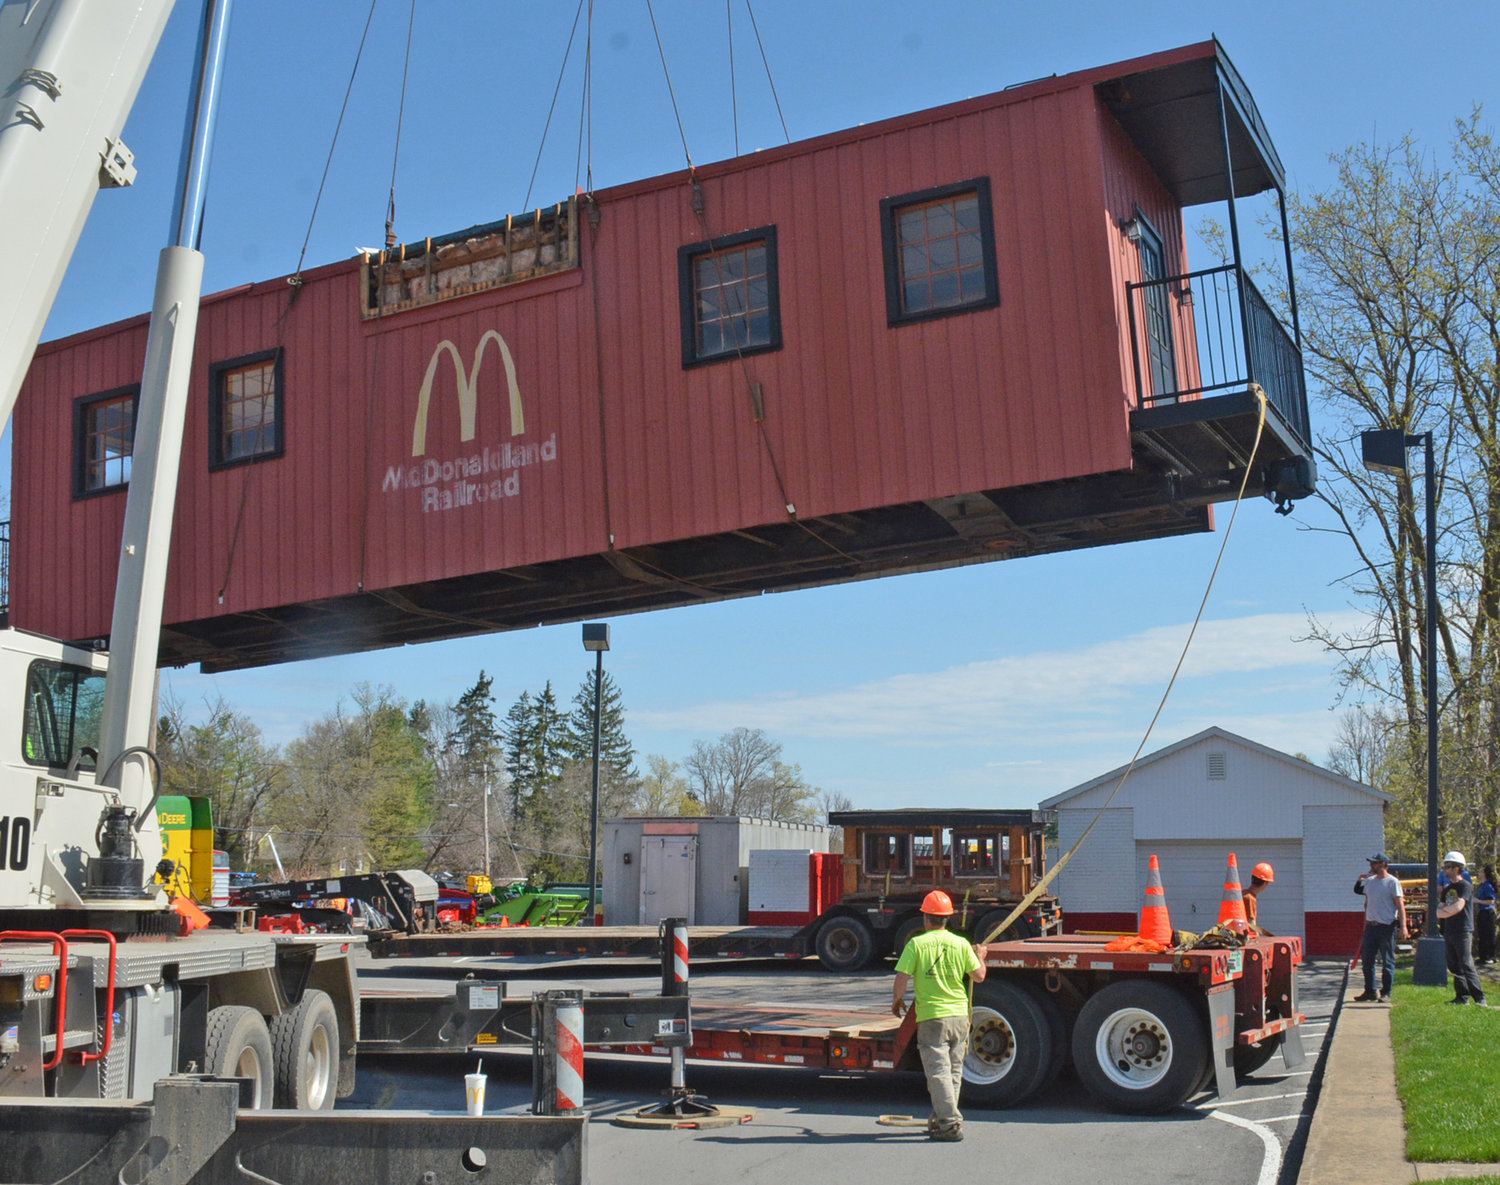 CABOOSE IS LOOSE — This red caboose known to many Clintonians from the drive-thru lane at the Meadow Street McDonalds pulled out of the fast food station for the last time on Tuesday, April 23 on its way to a new home in St. Johnsville. The new owners of the 30-year-old conversation piece plan on make it an 1860s era cabin for rent in their recreation trailer park.